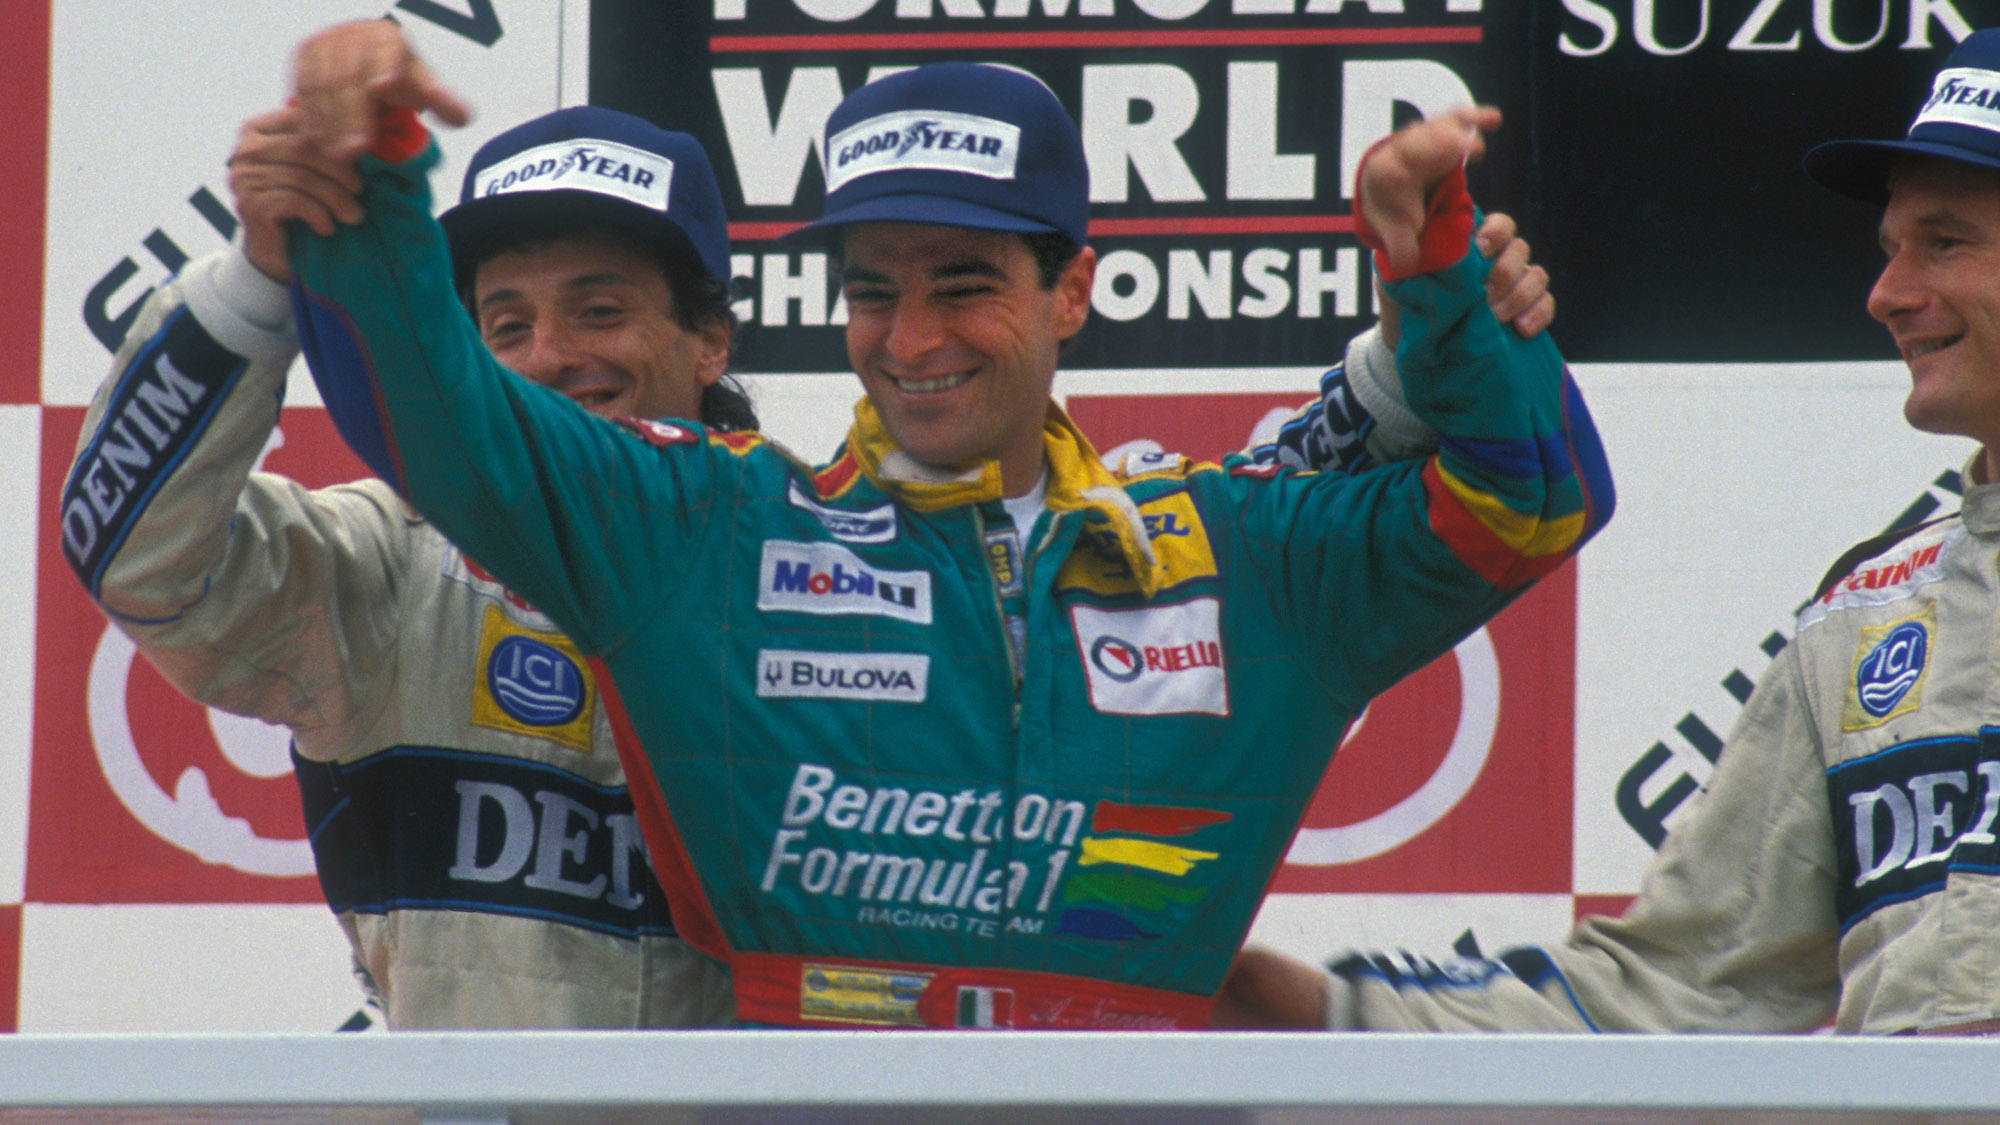 Alessandro Nannini on the podium after the 1989 Japanese Grand Prix